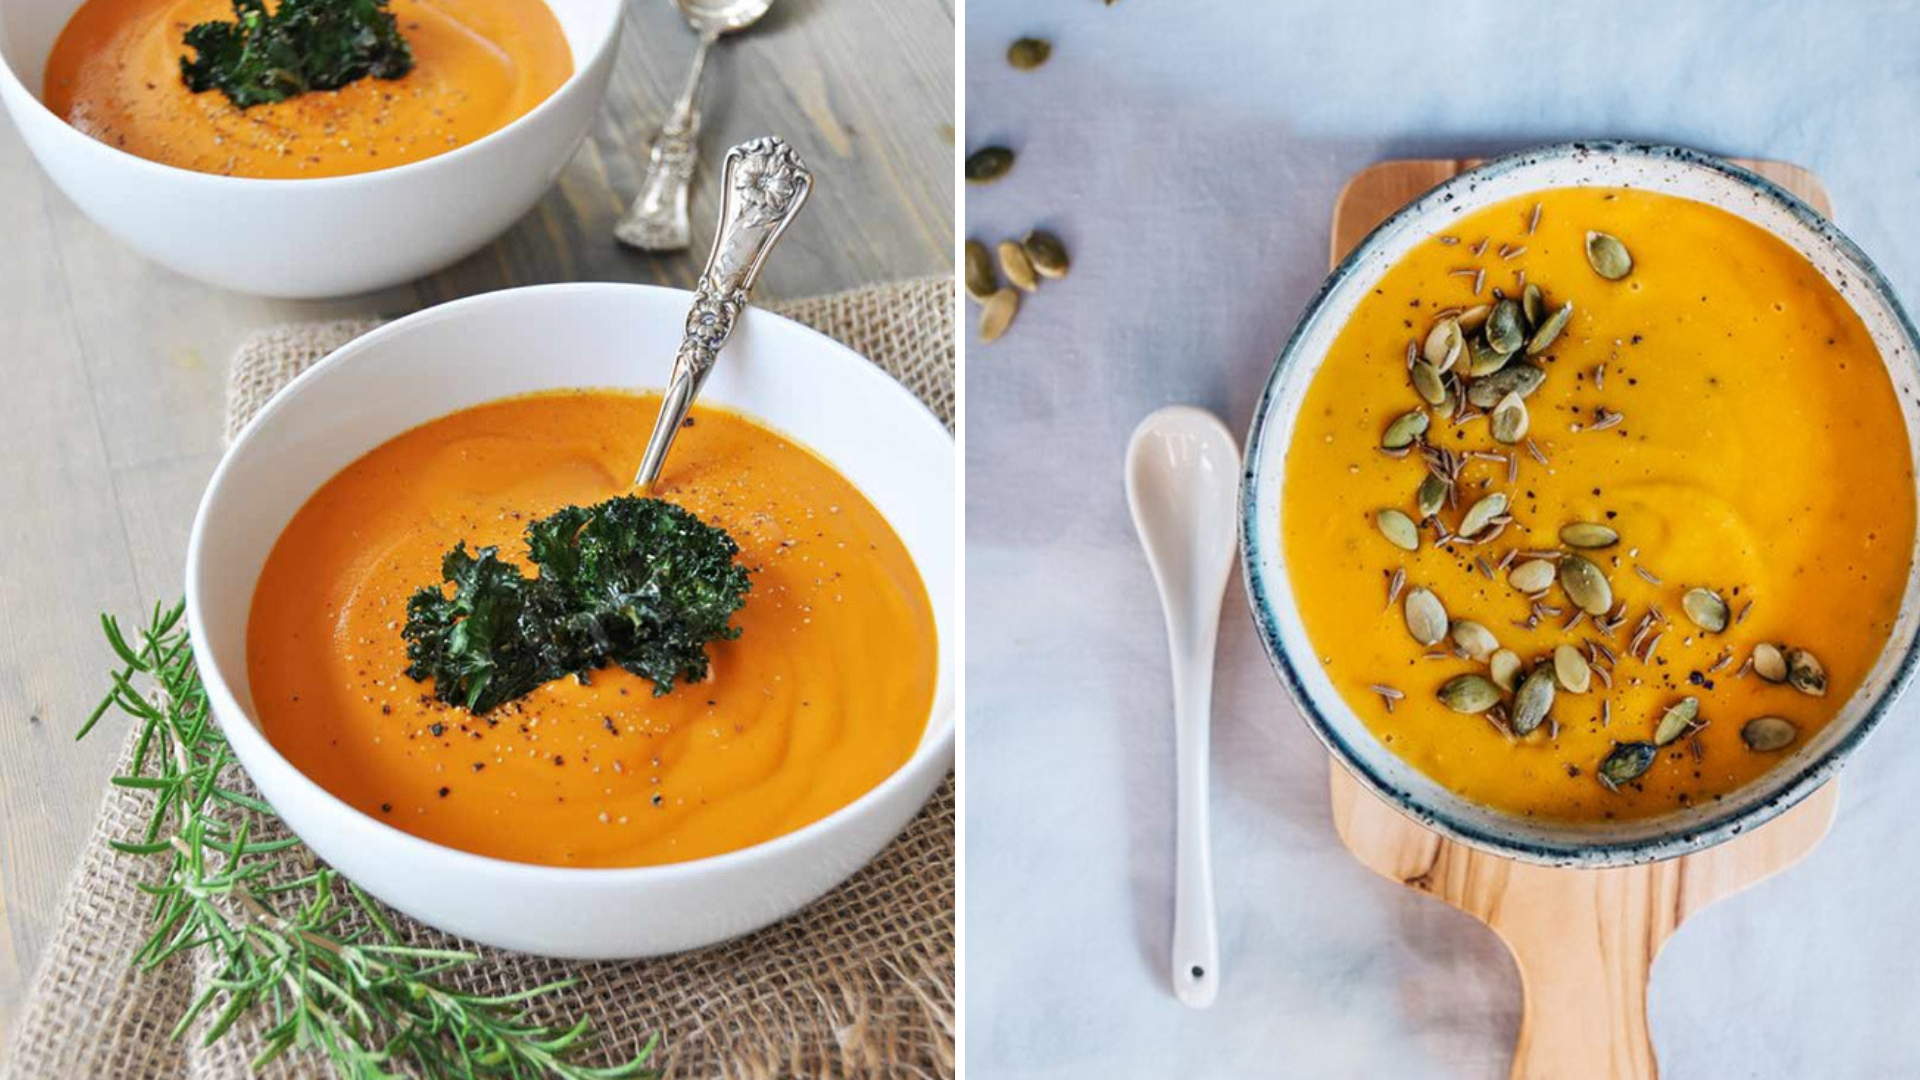 Recipes for Blended Soups to Keep You Warm This Fall